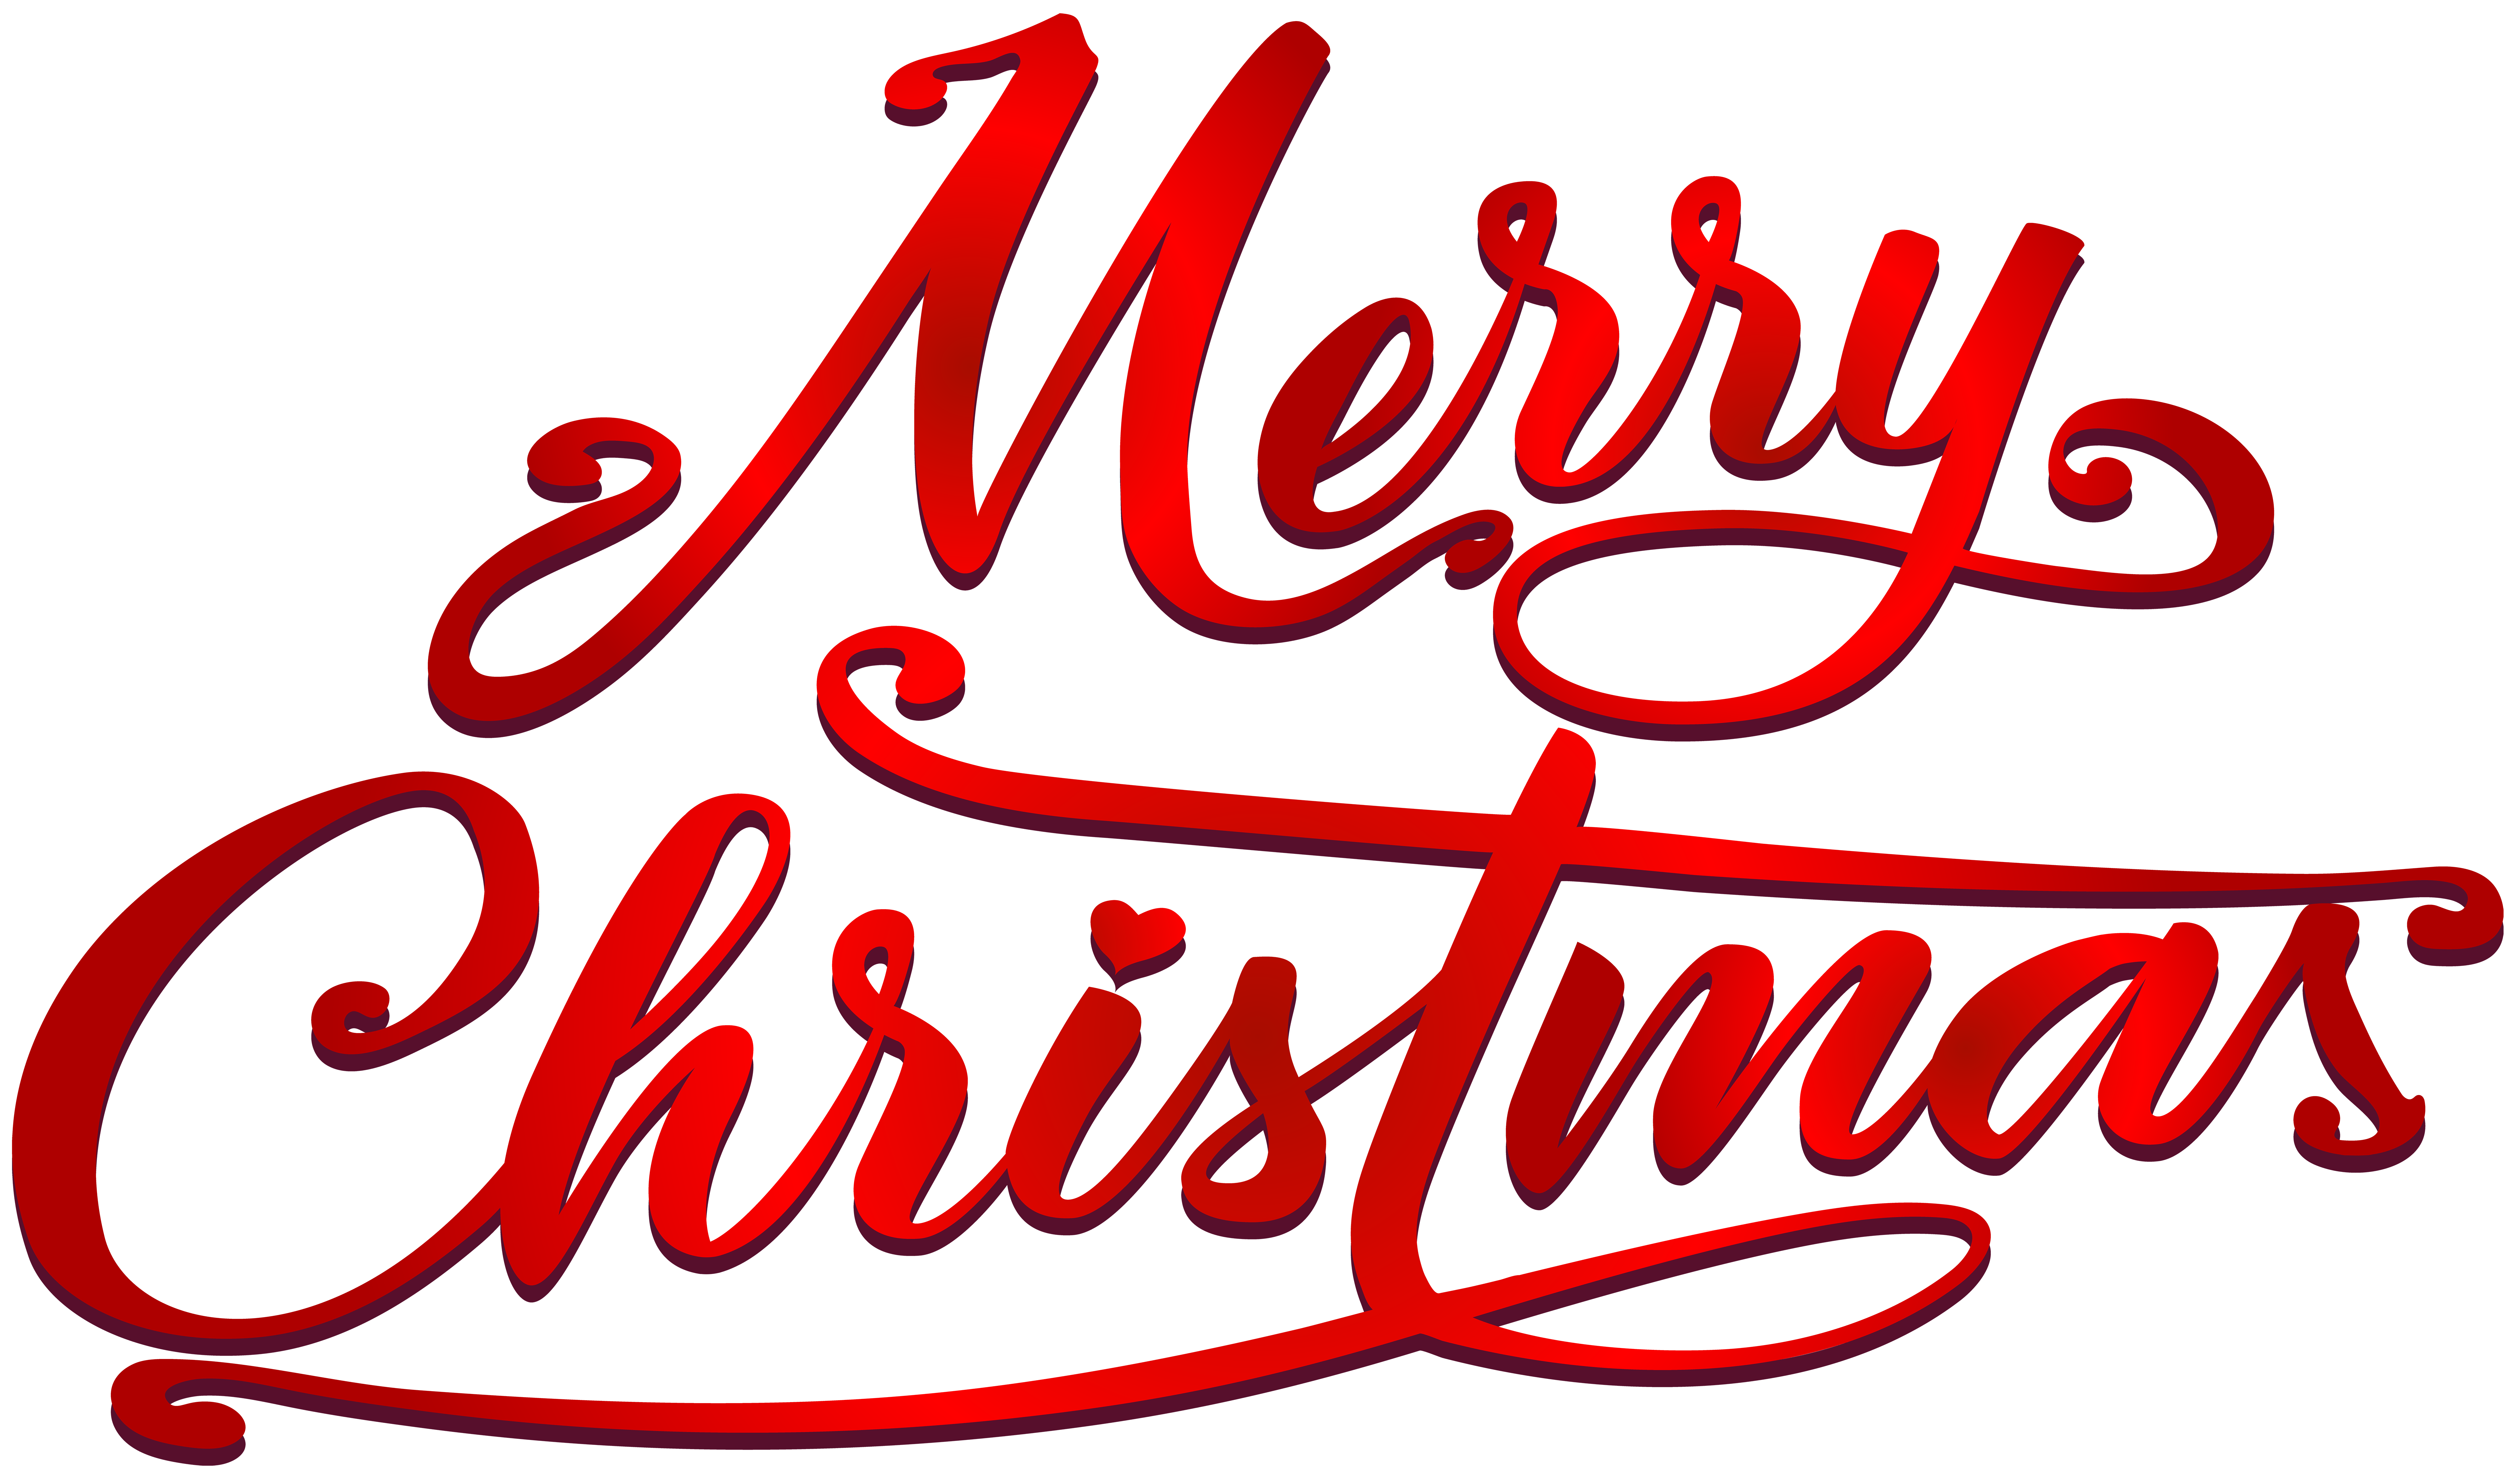 8000x4696 Merry Christmas Text Png Clip Art Imageu200b Gallery Yopriceville